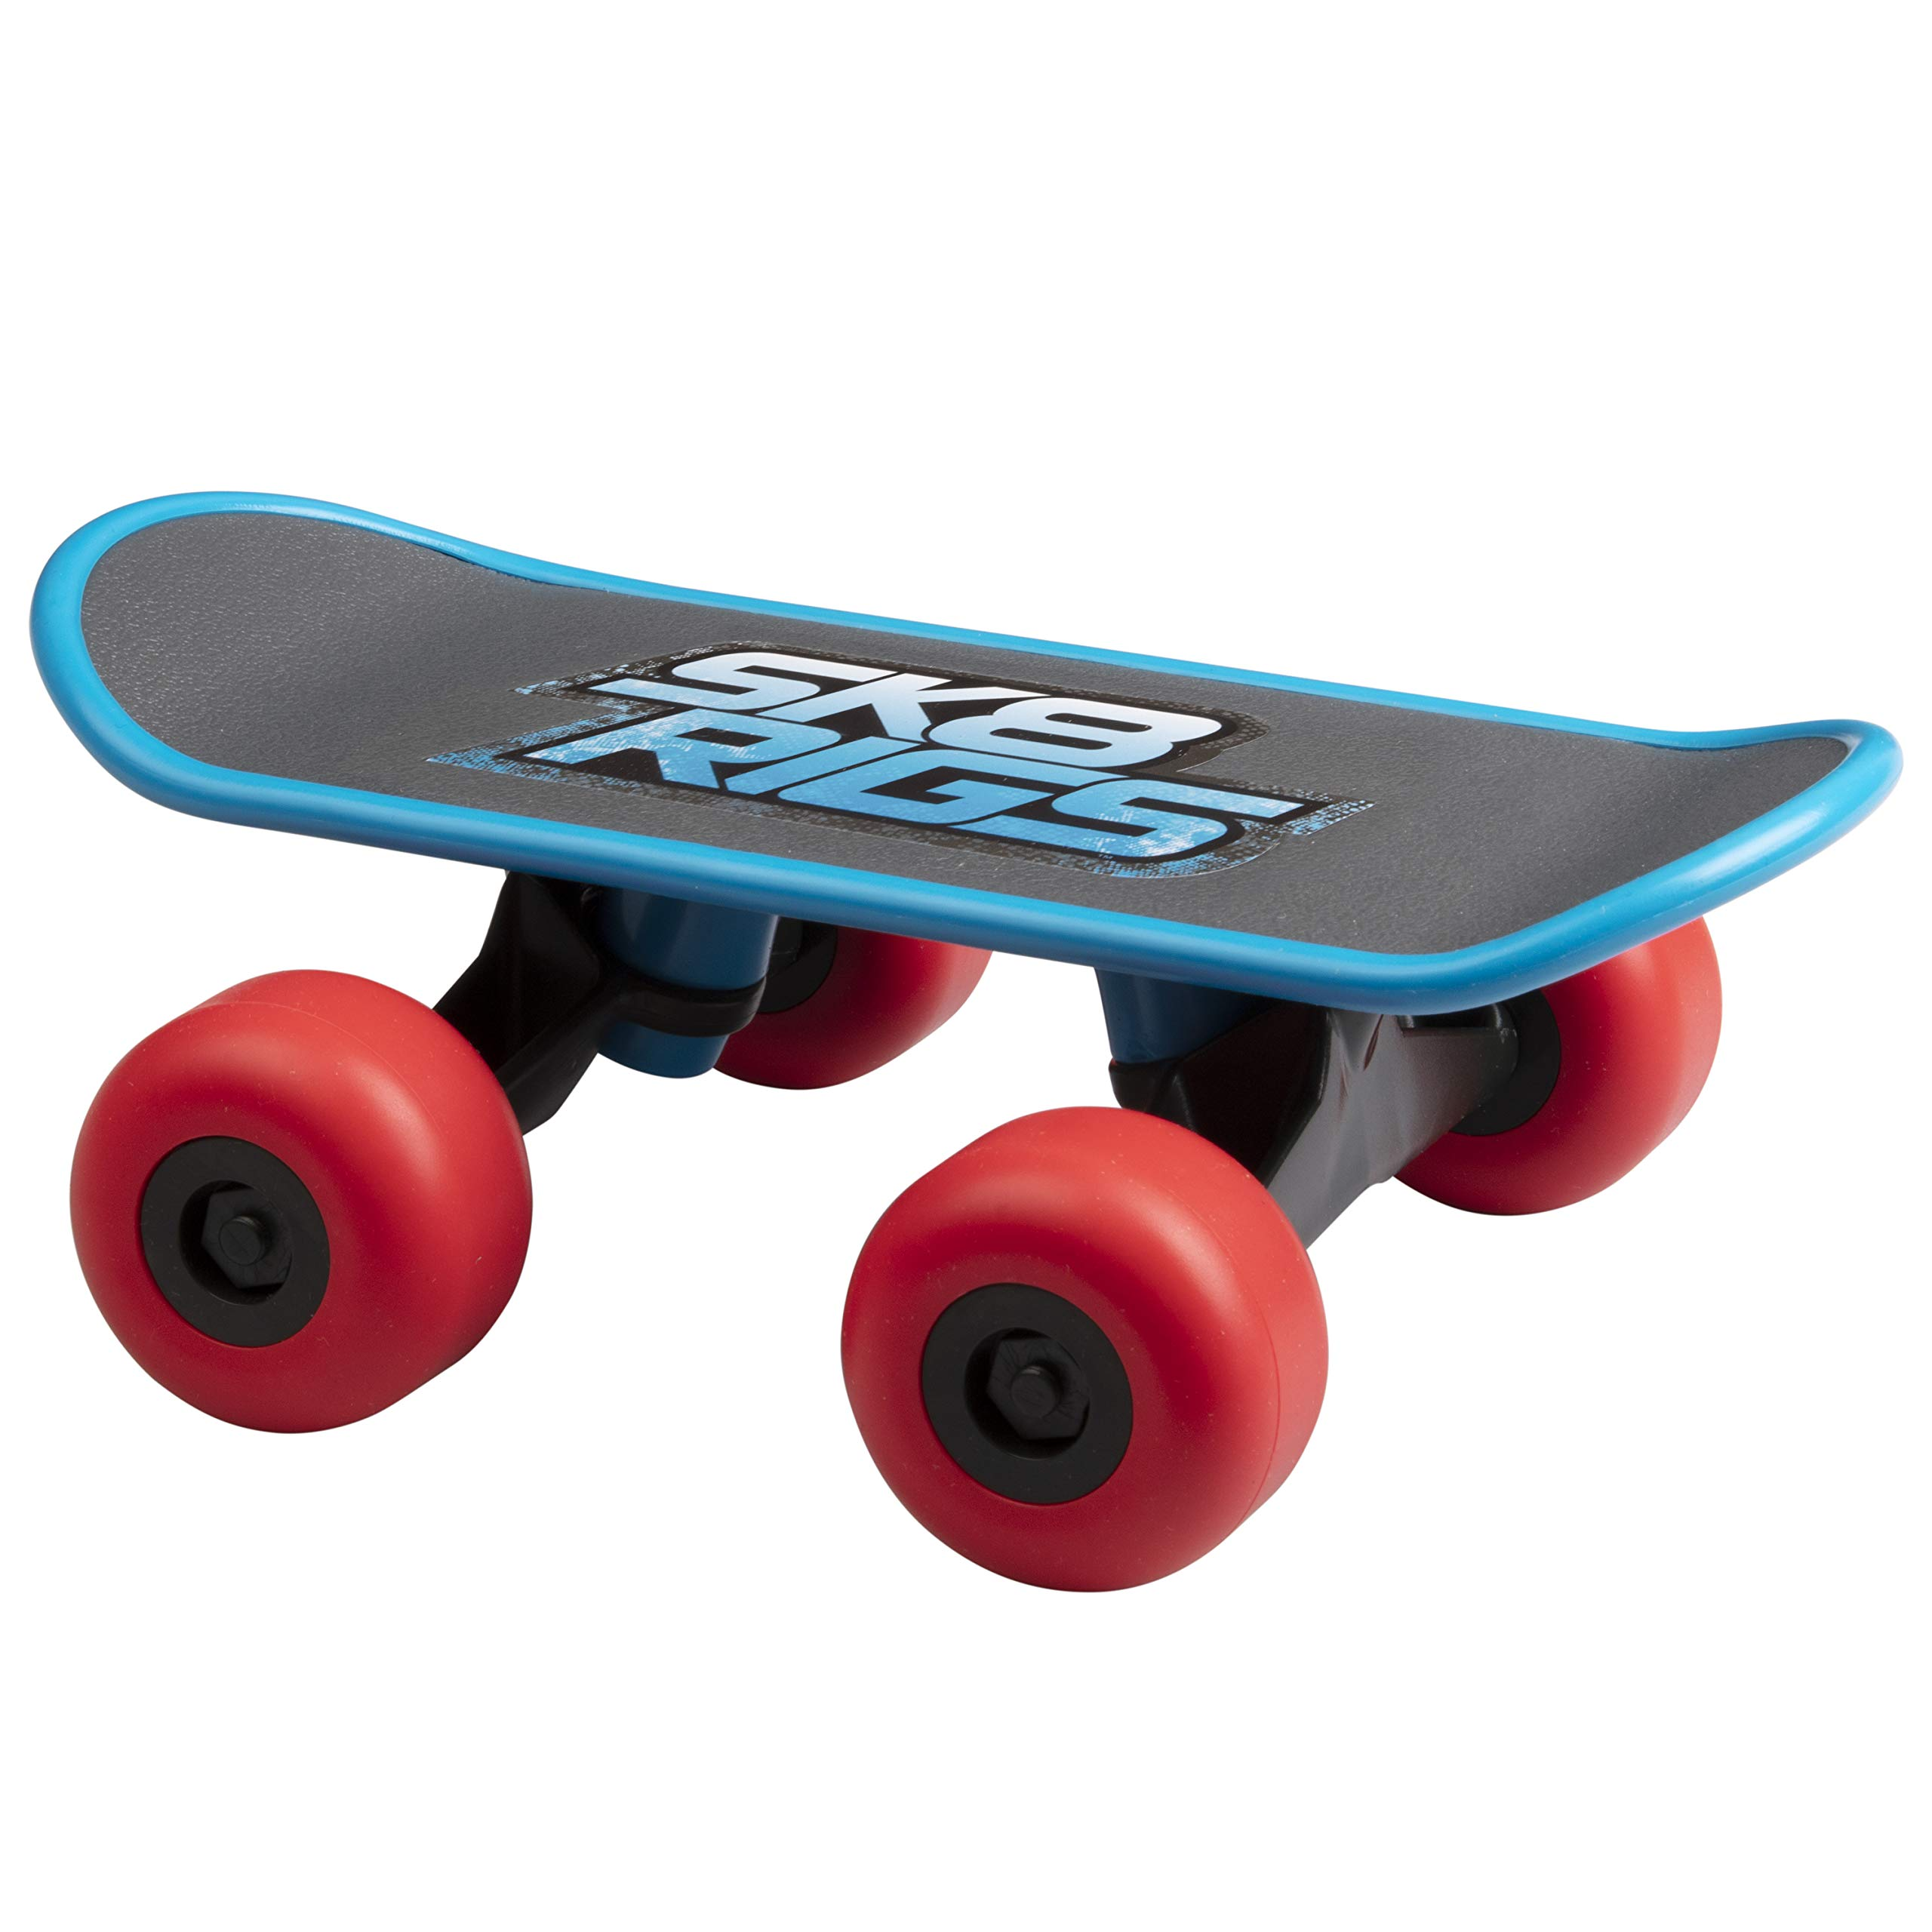 SK8 Rigs Handboard for Kids - Hand Powered Skateboard - Safely Perform Amazing Skateboard Tricks with Your Hands - Blue Chompy - Age 3+